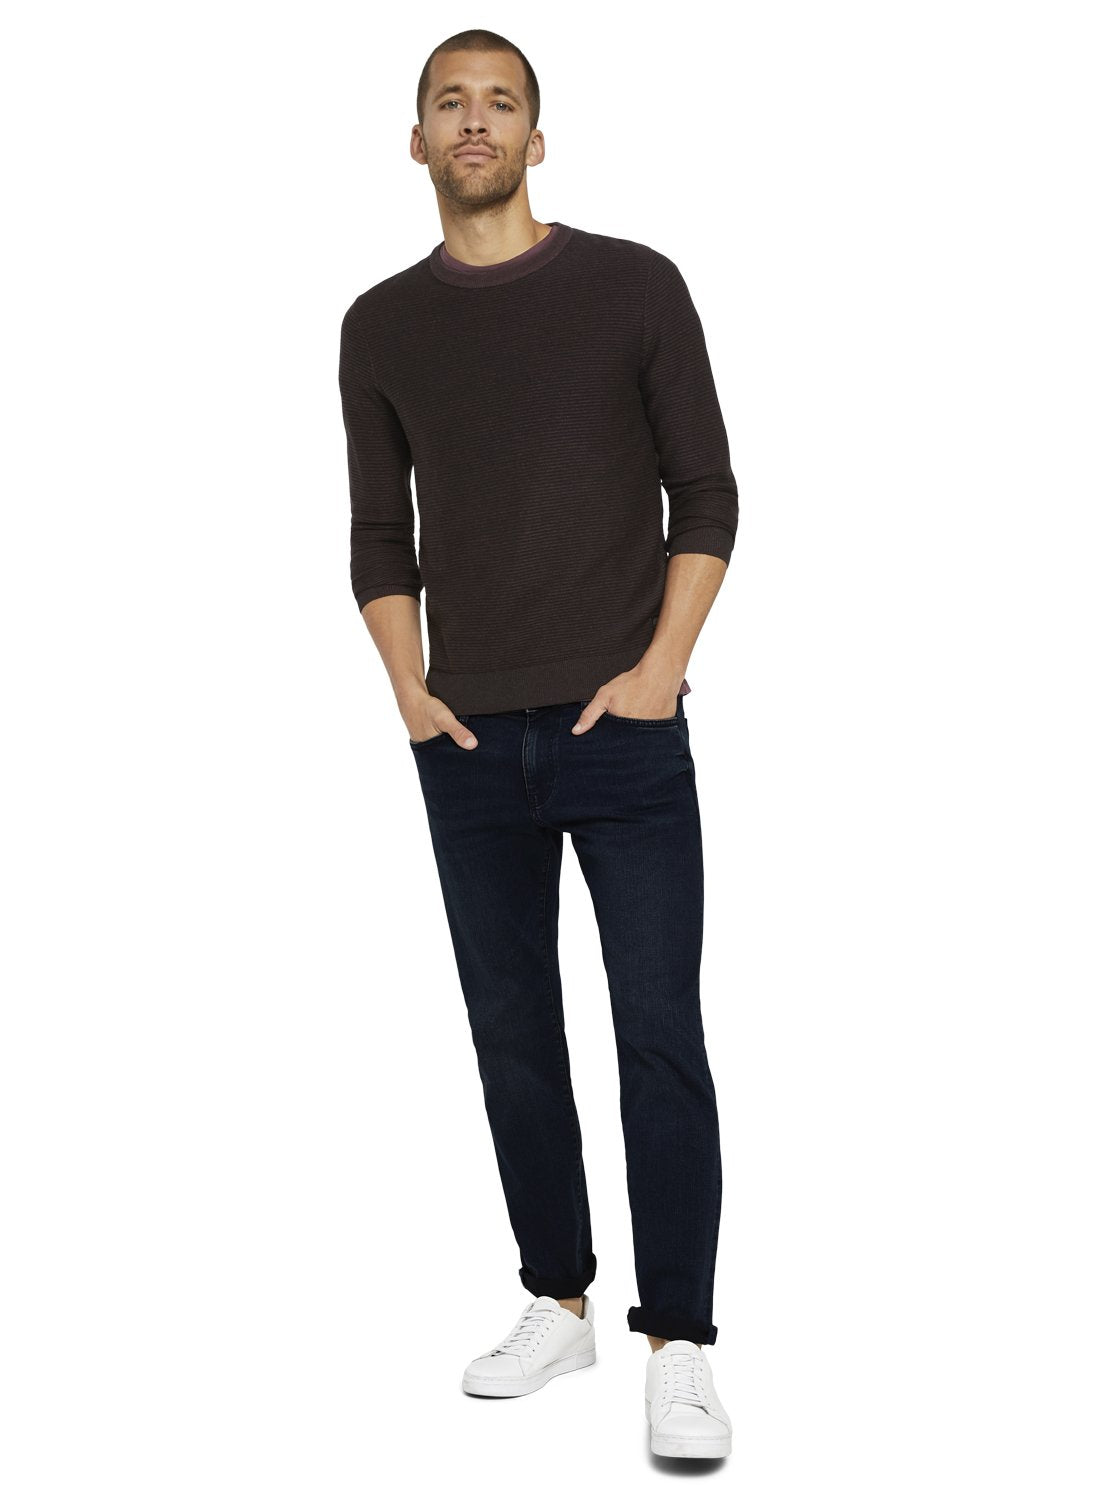 Tom Tailor 1020416 men's burgundy sweater